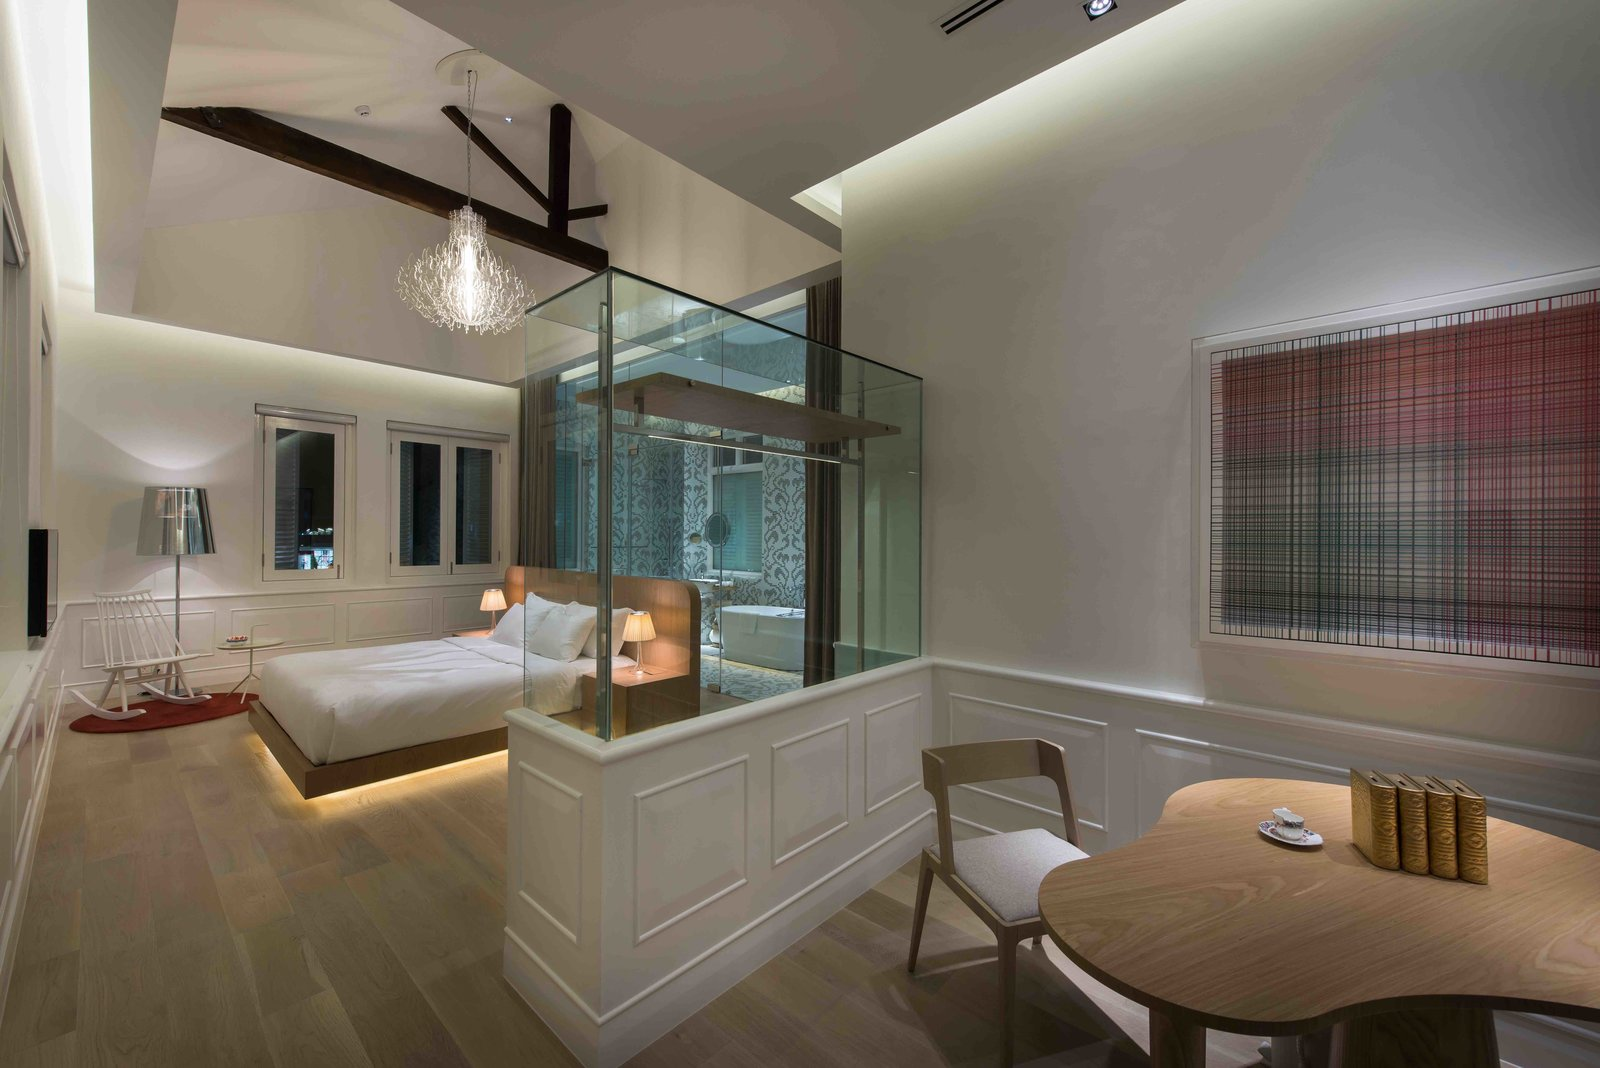 The interiors at Macalister Mansion in Penang, Malaysia  Photo 14 of 24 in 12 Modern Hotels in Historic Buildings Around the World